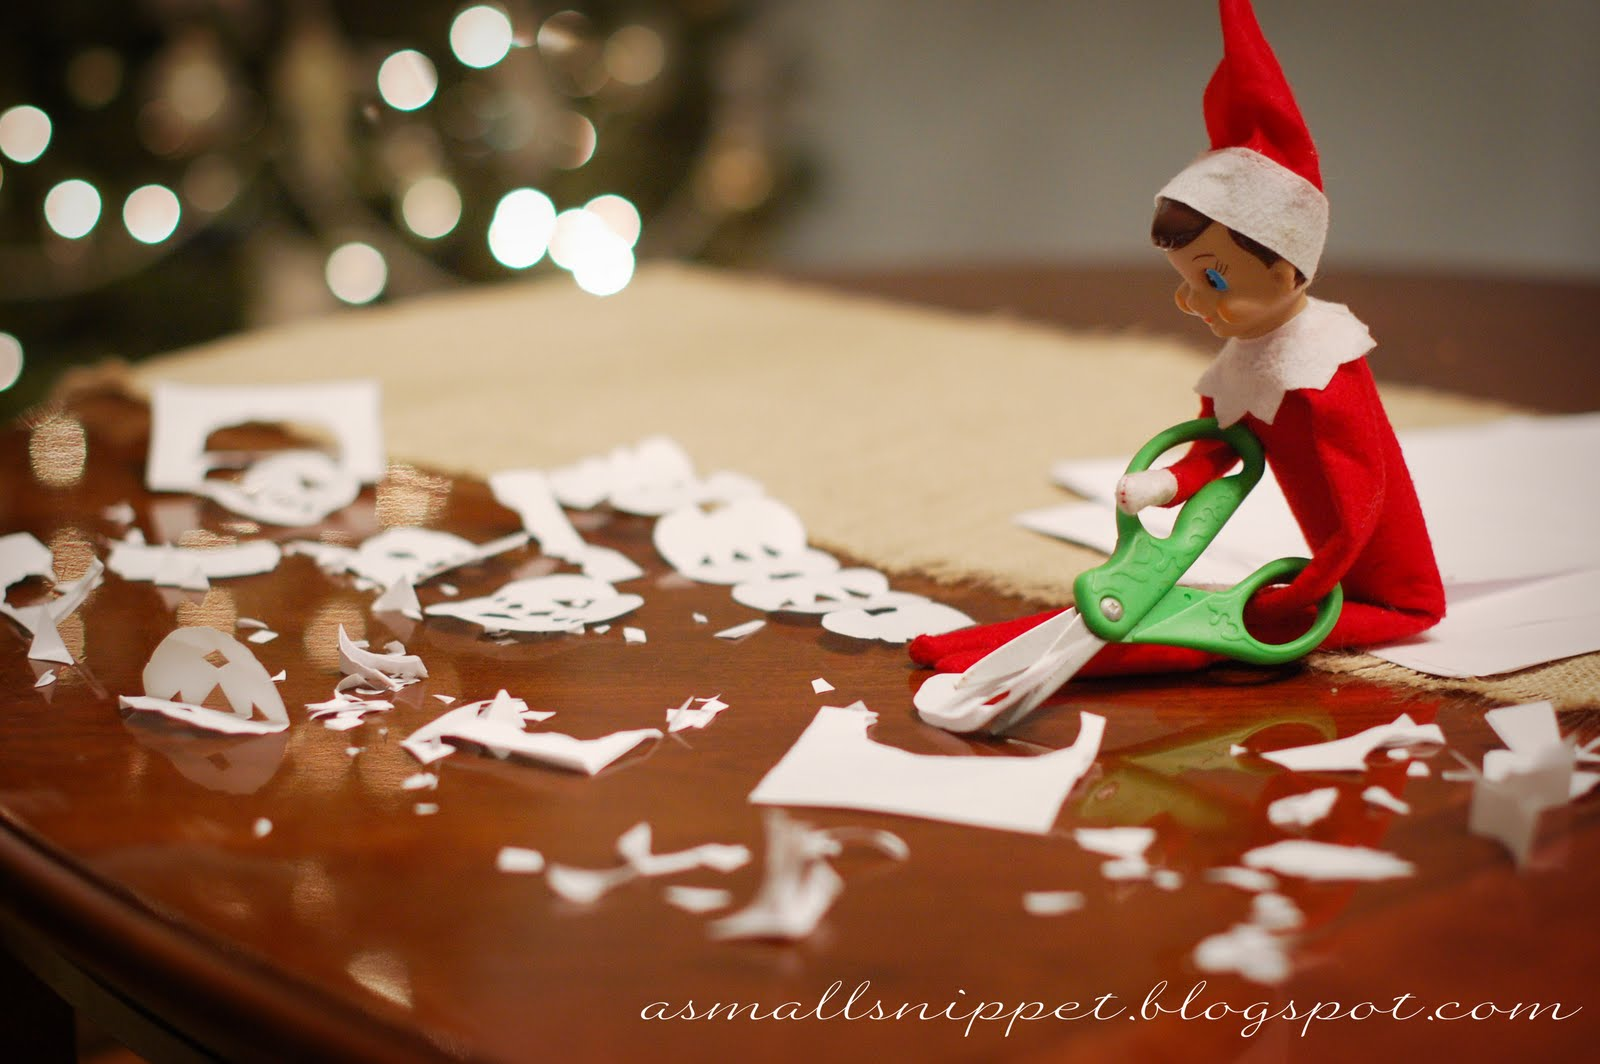 45 Elf On The Shelf Ideas From The Same Elf